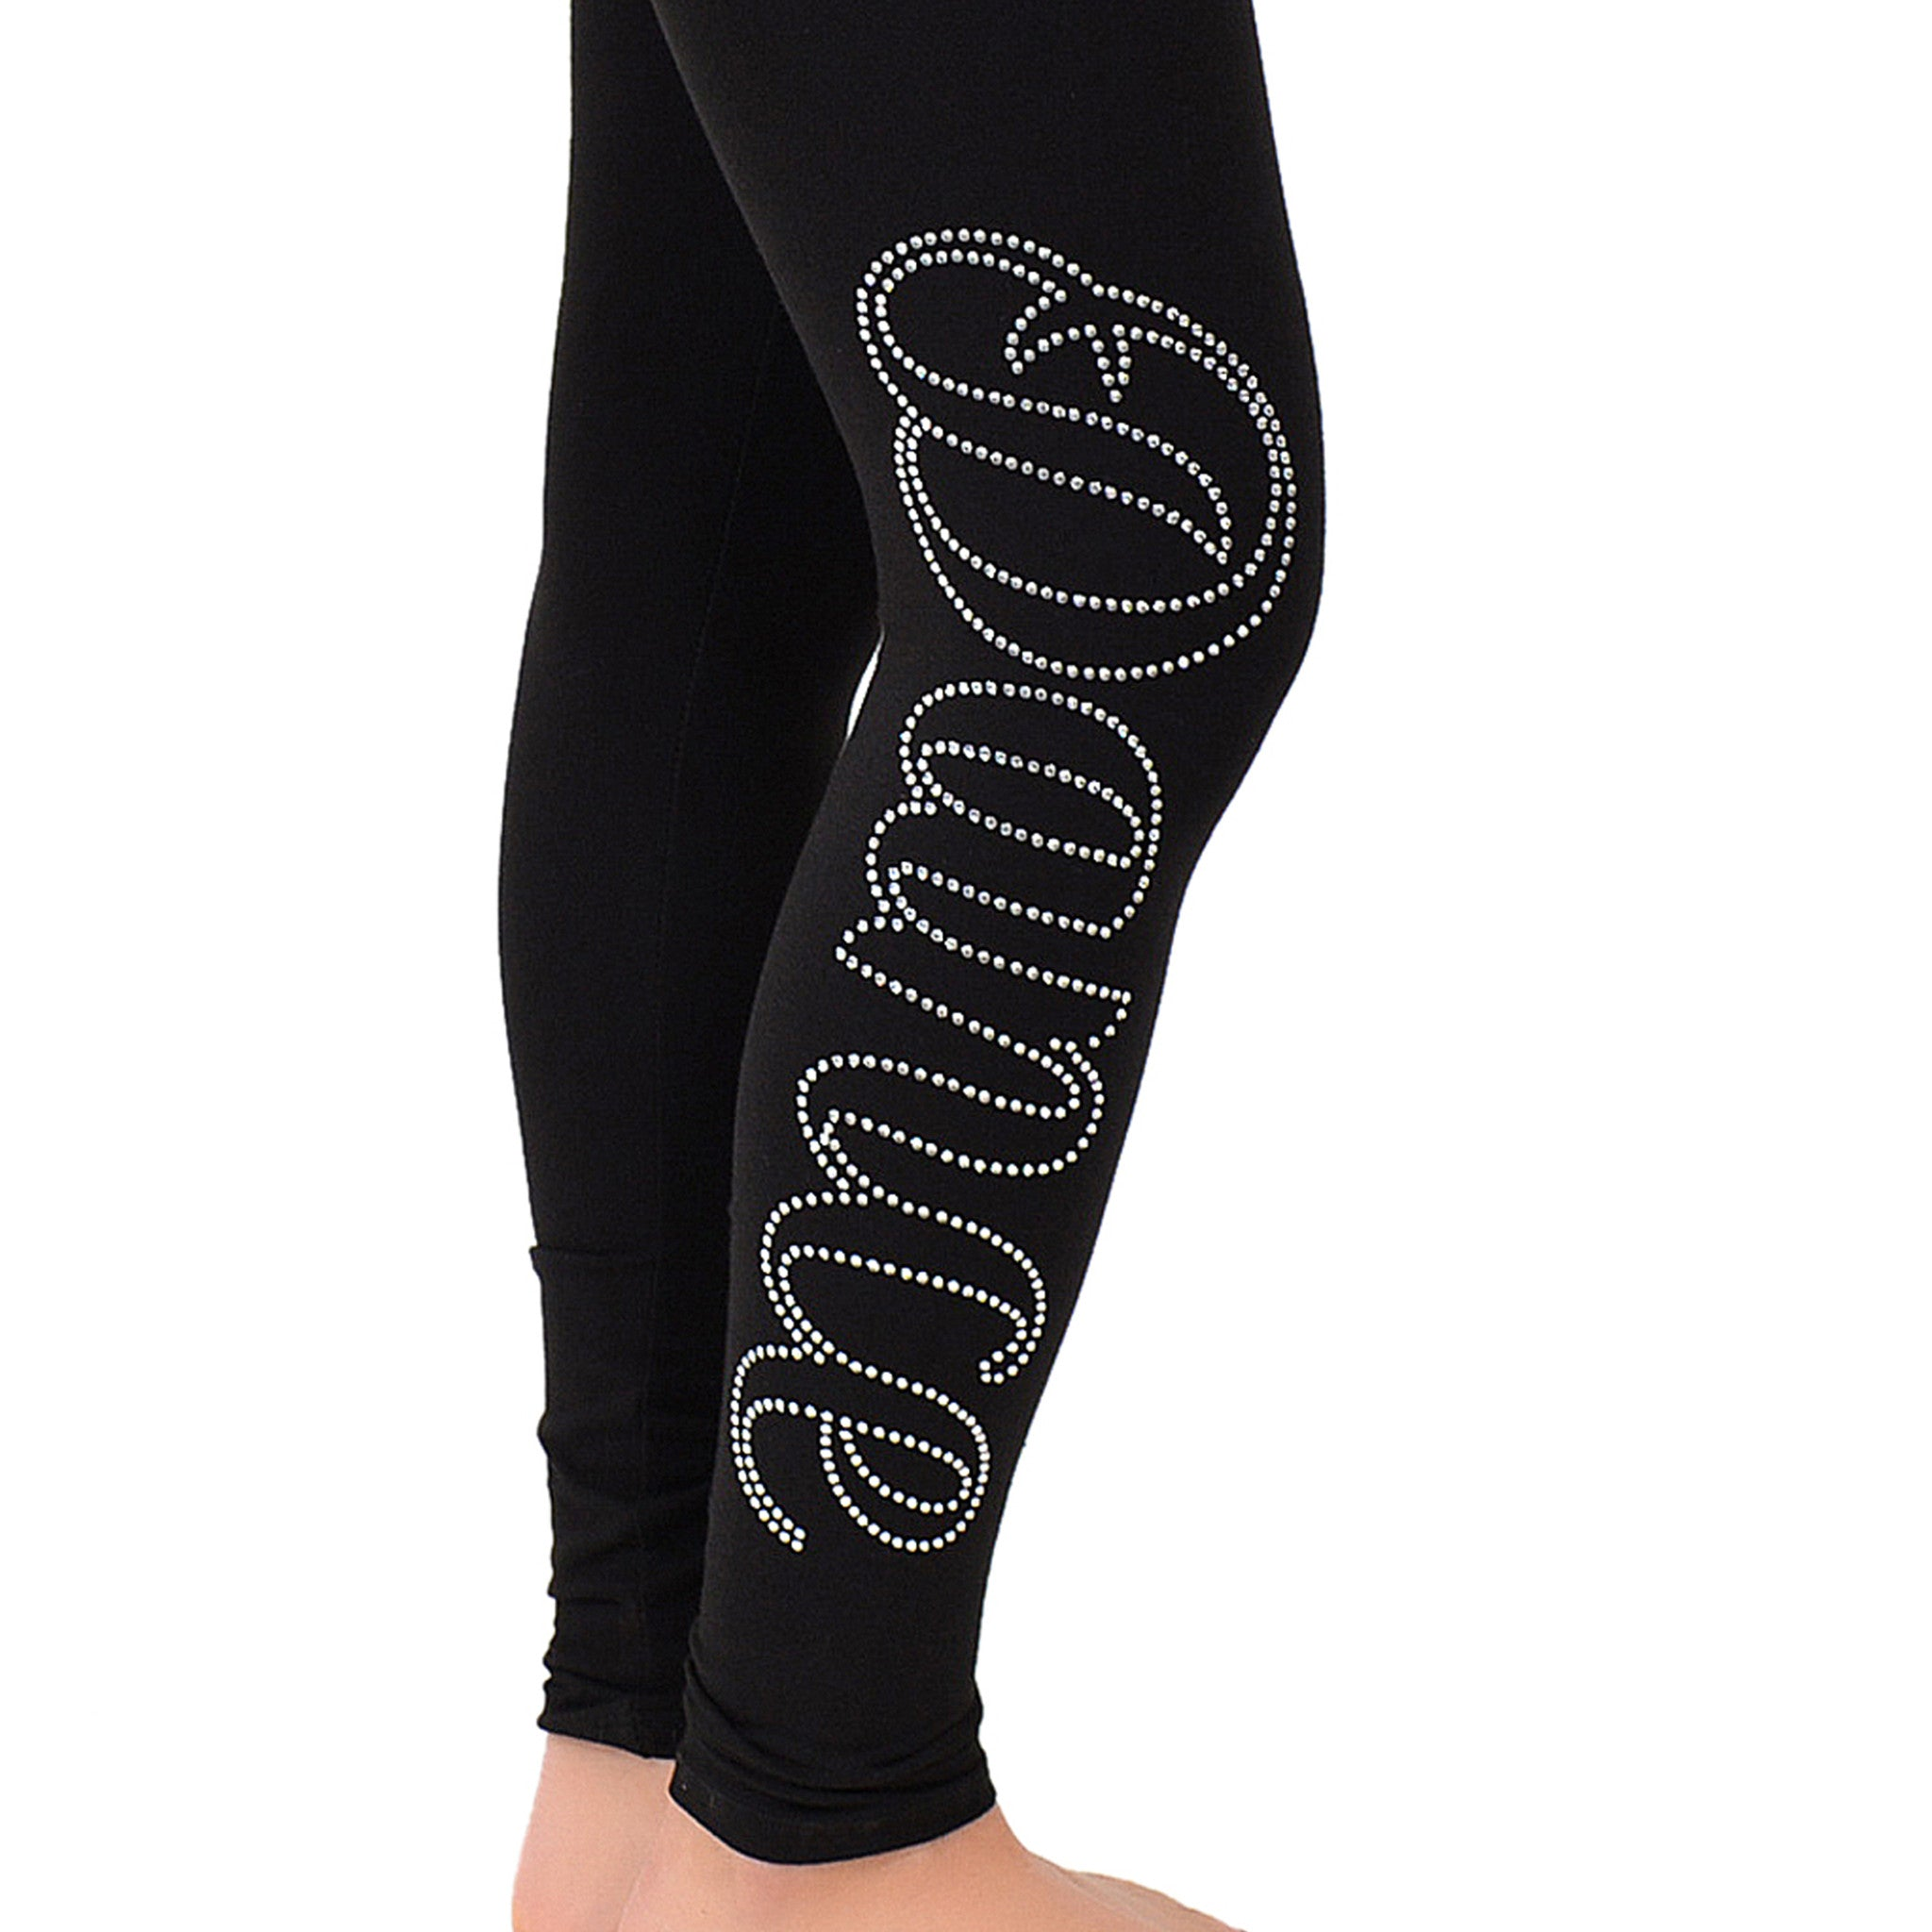 Women's Dance Rhinestone Foldover Cotton Leggings